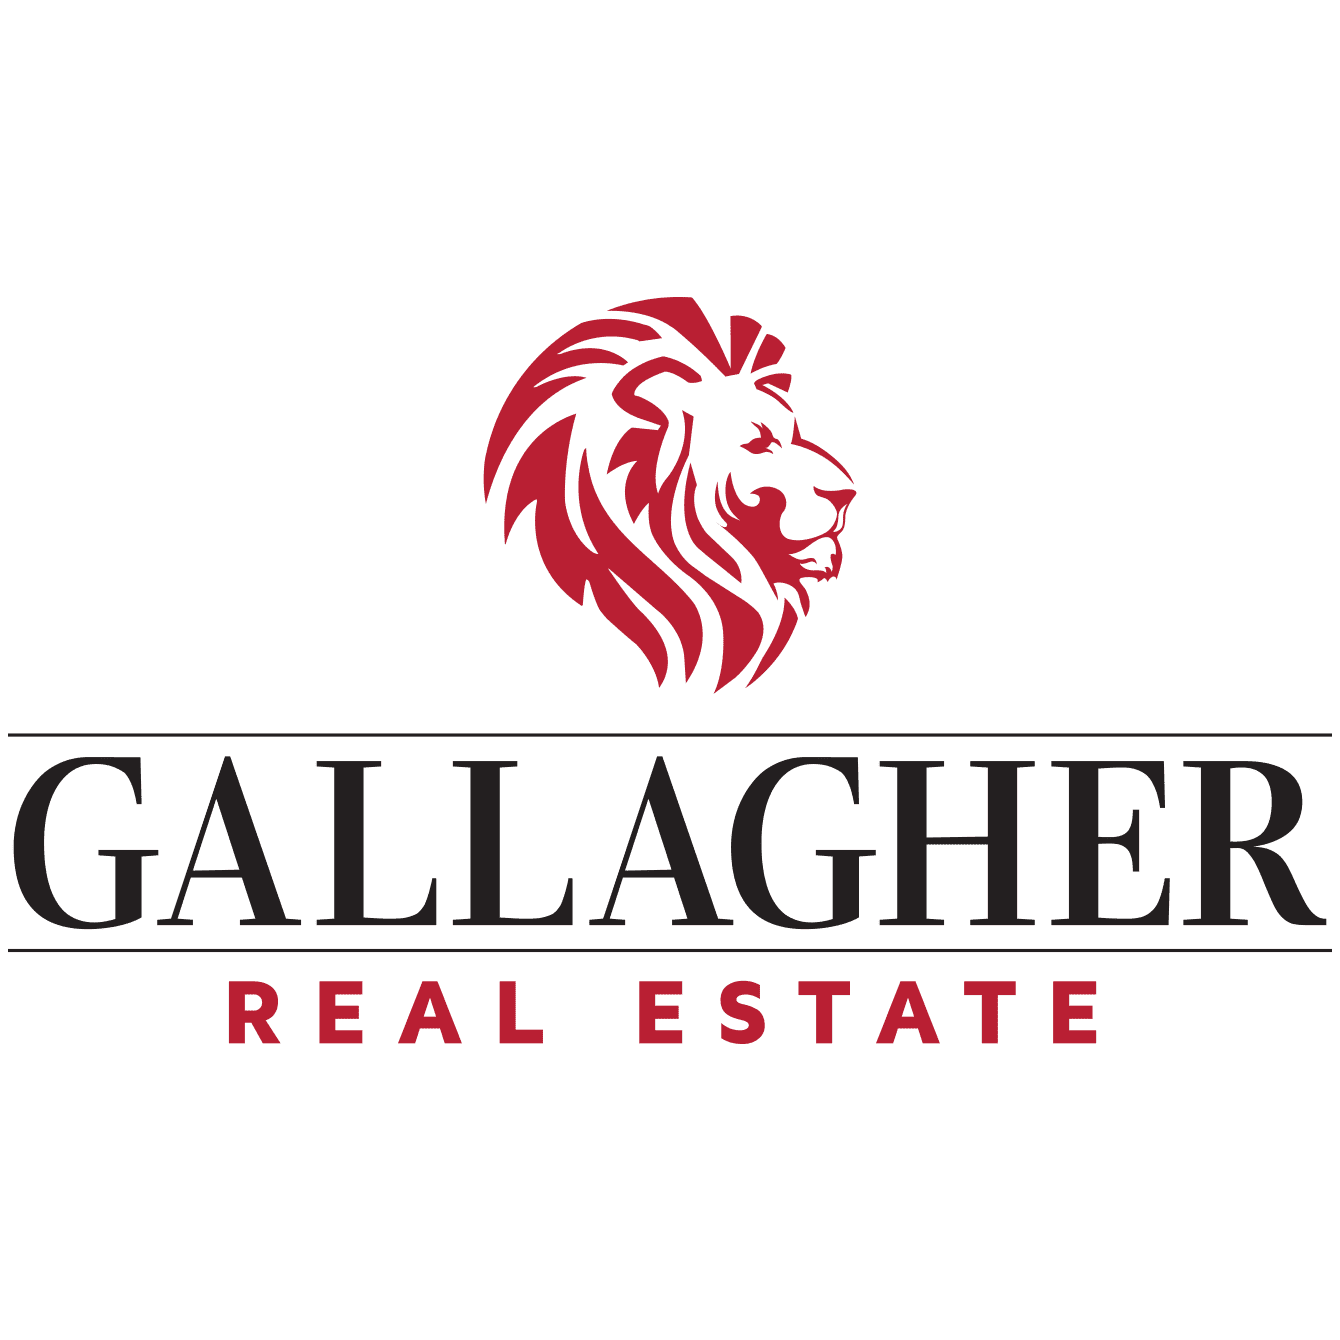 Gallagher Real Estate logo design and branding by DIF Design